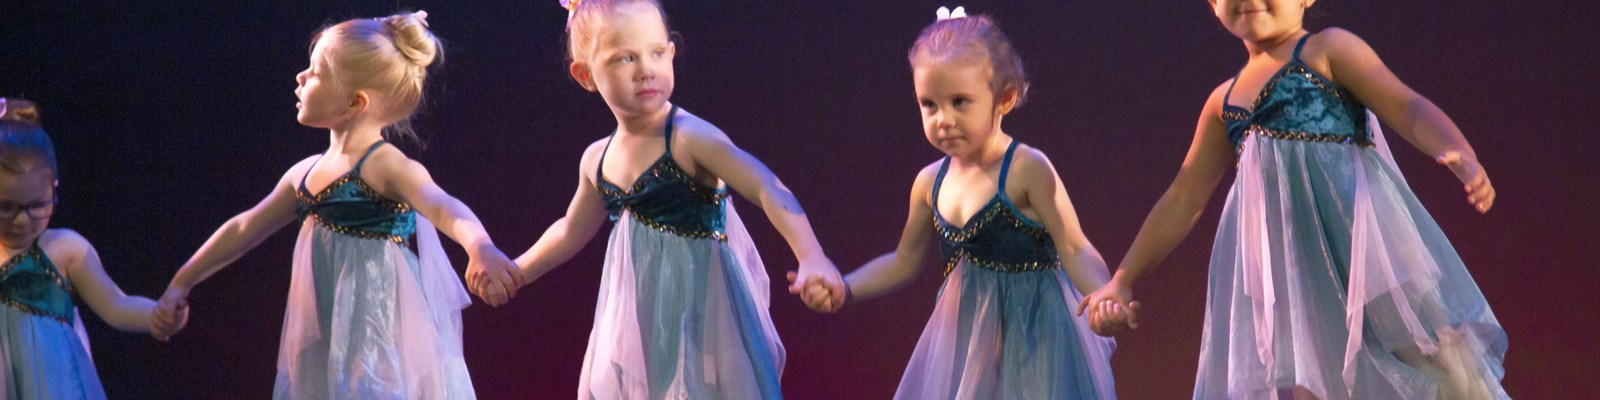 Early Childhood / Preschool Dance Classes,